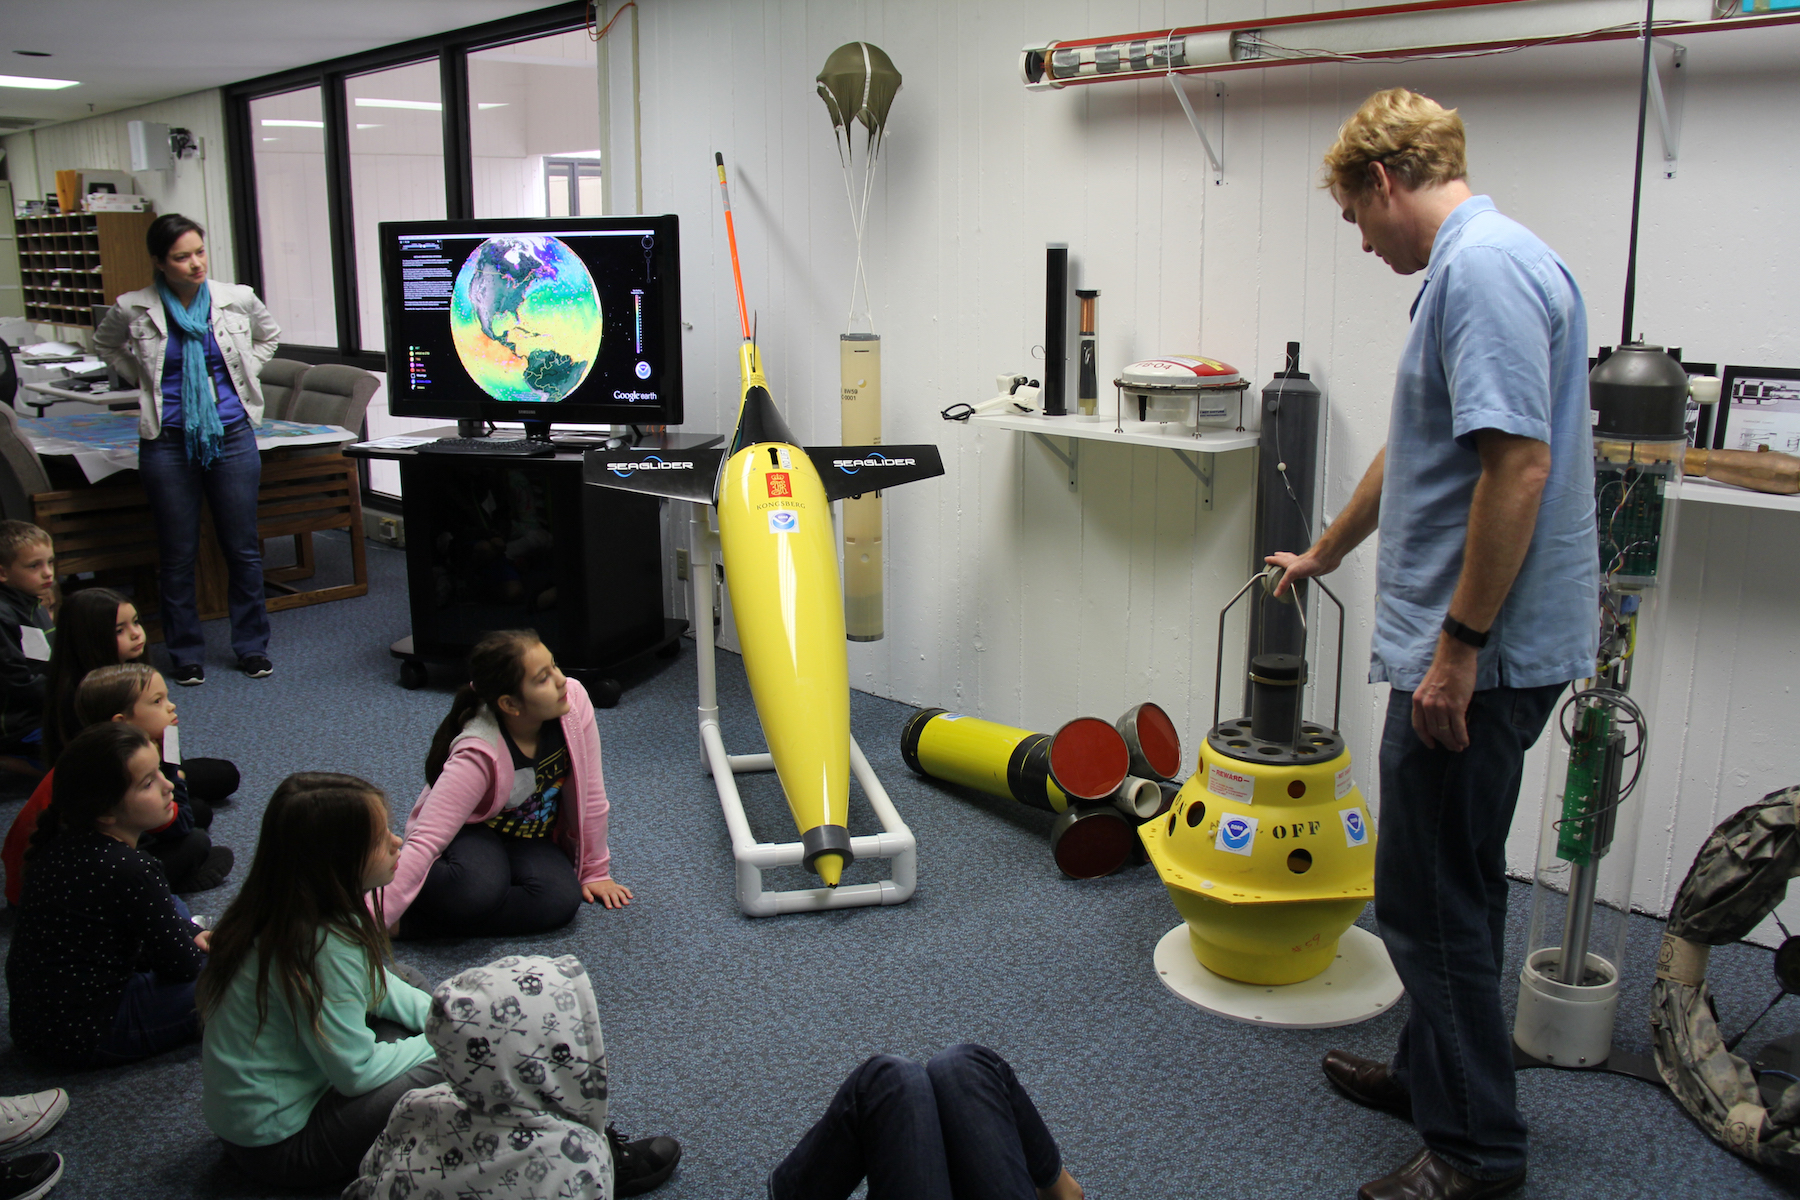 AOML oceanographer Rick Lumpkin gives a lesson on the global ocean observing network. Image credit: NOAA